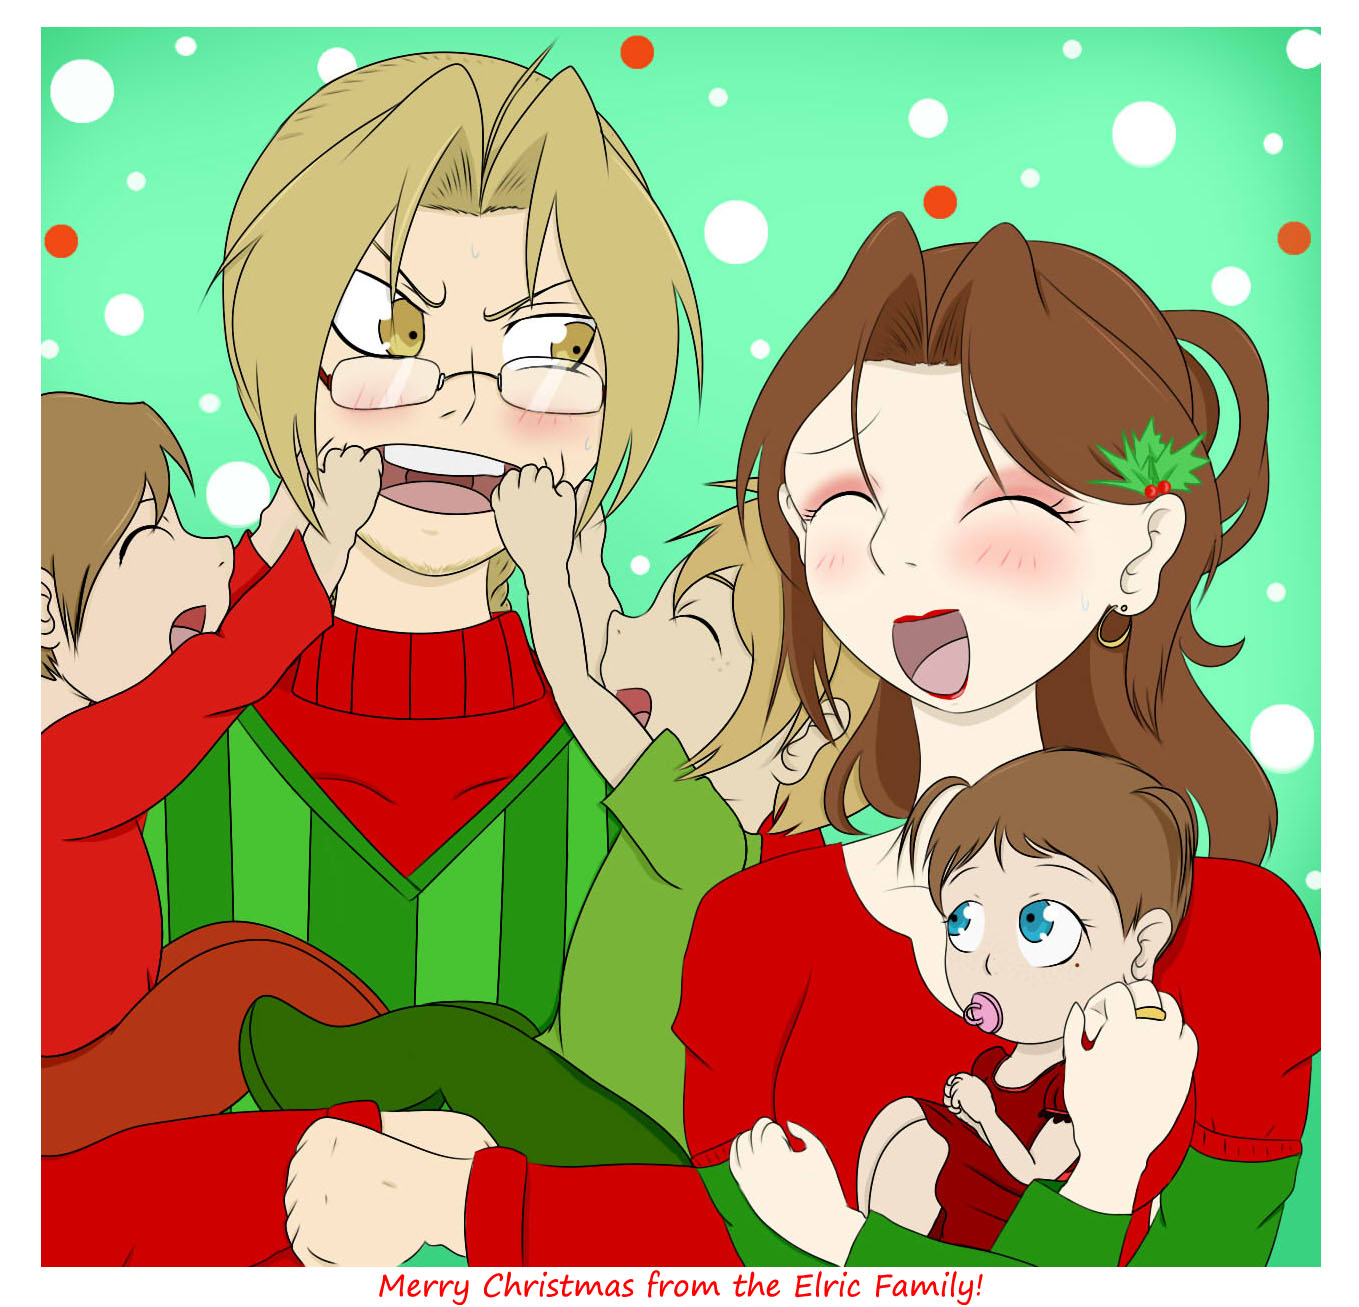 Merry Christmas 2014 from the Elric Family — Weasyl